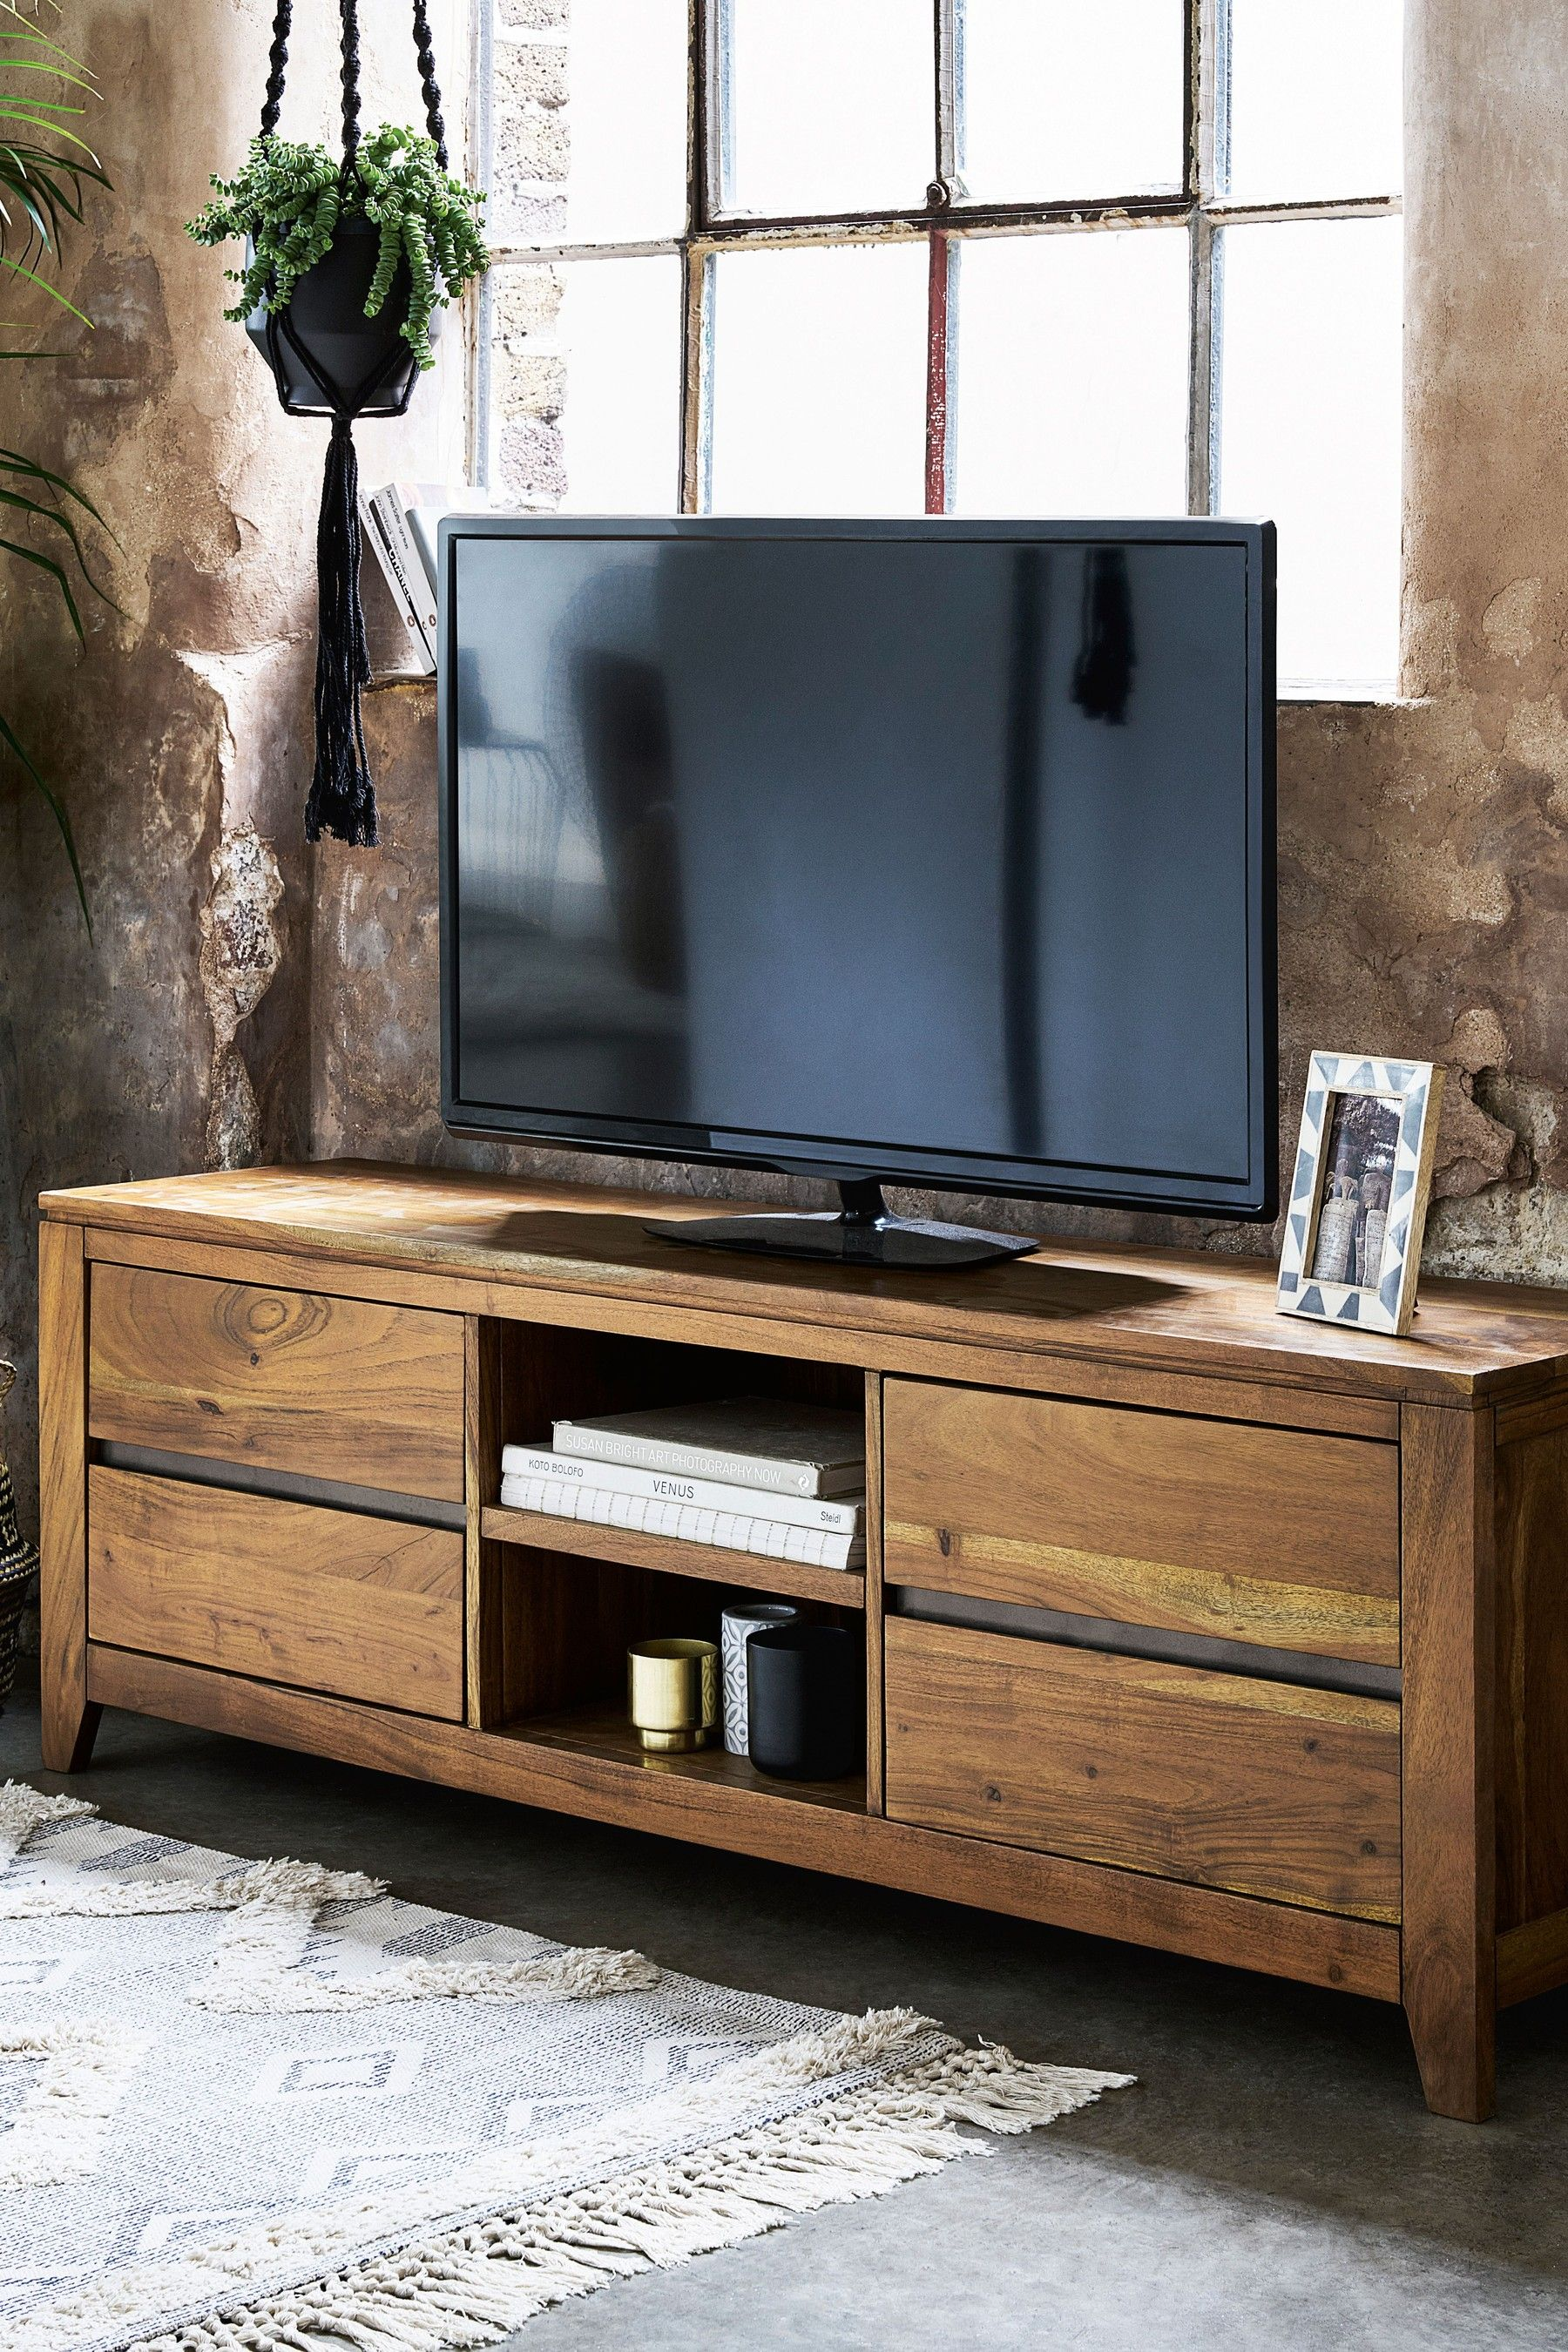 Next Amsterdam Wide Tv Stand Natural Wood Tv Unit Wooden Tv